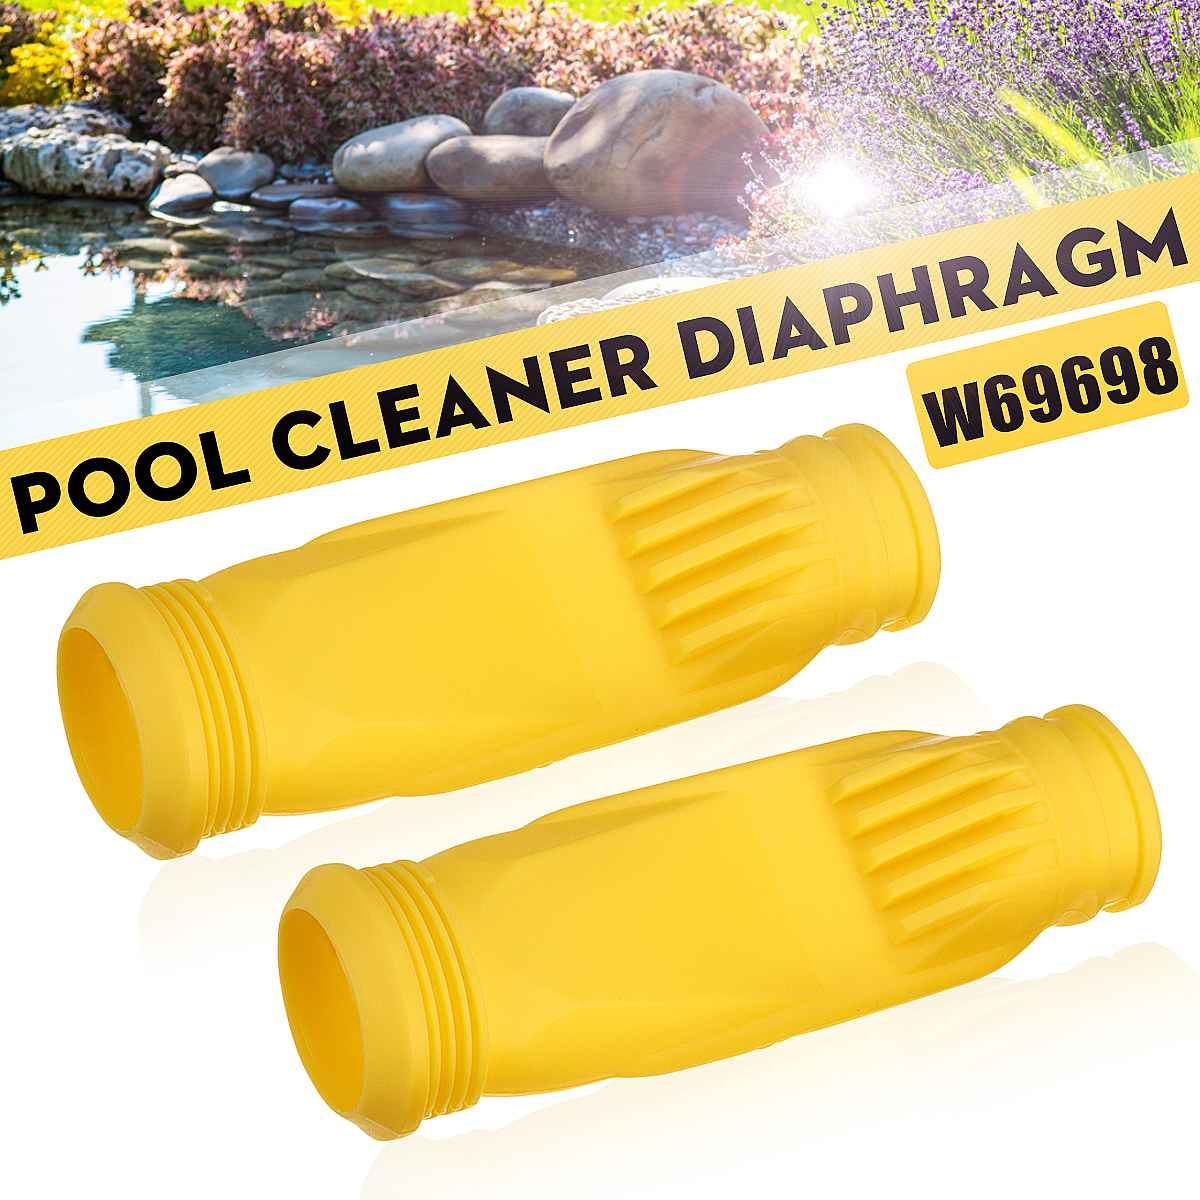 2X Swimming Pool Garden Pond Diaphragm Pool Cleaner Cleaning Replacement Part W69698 For Zodiac Baracuda G3 G4